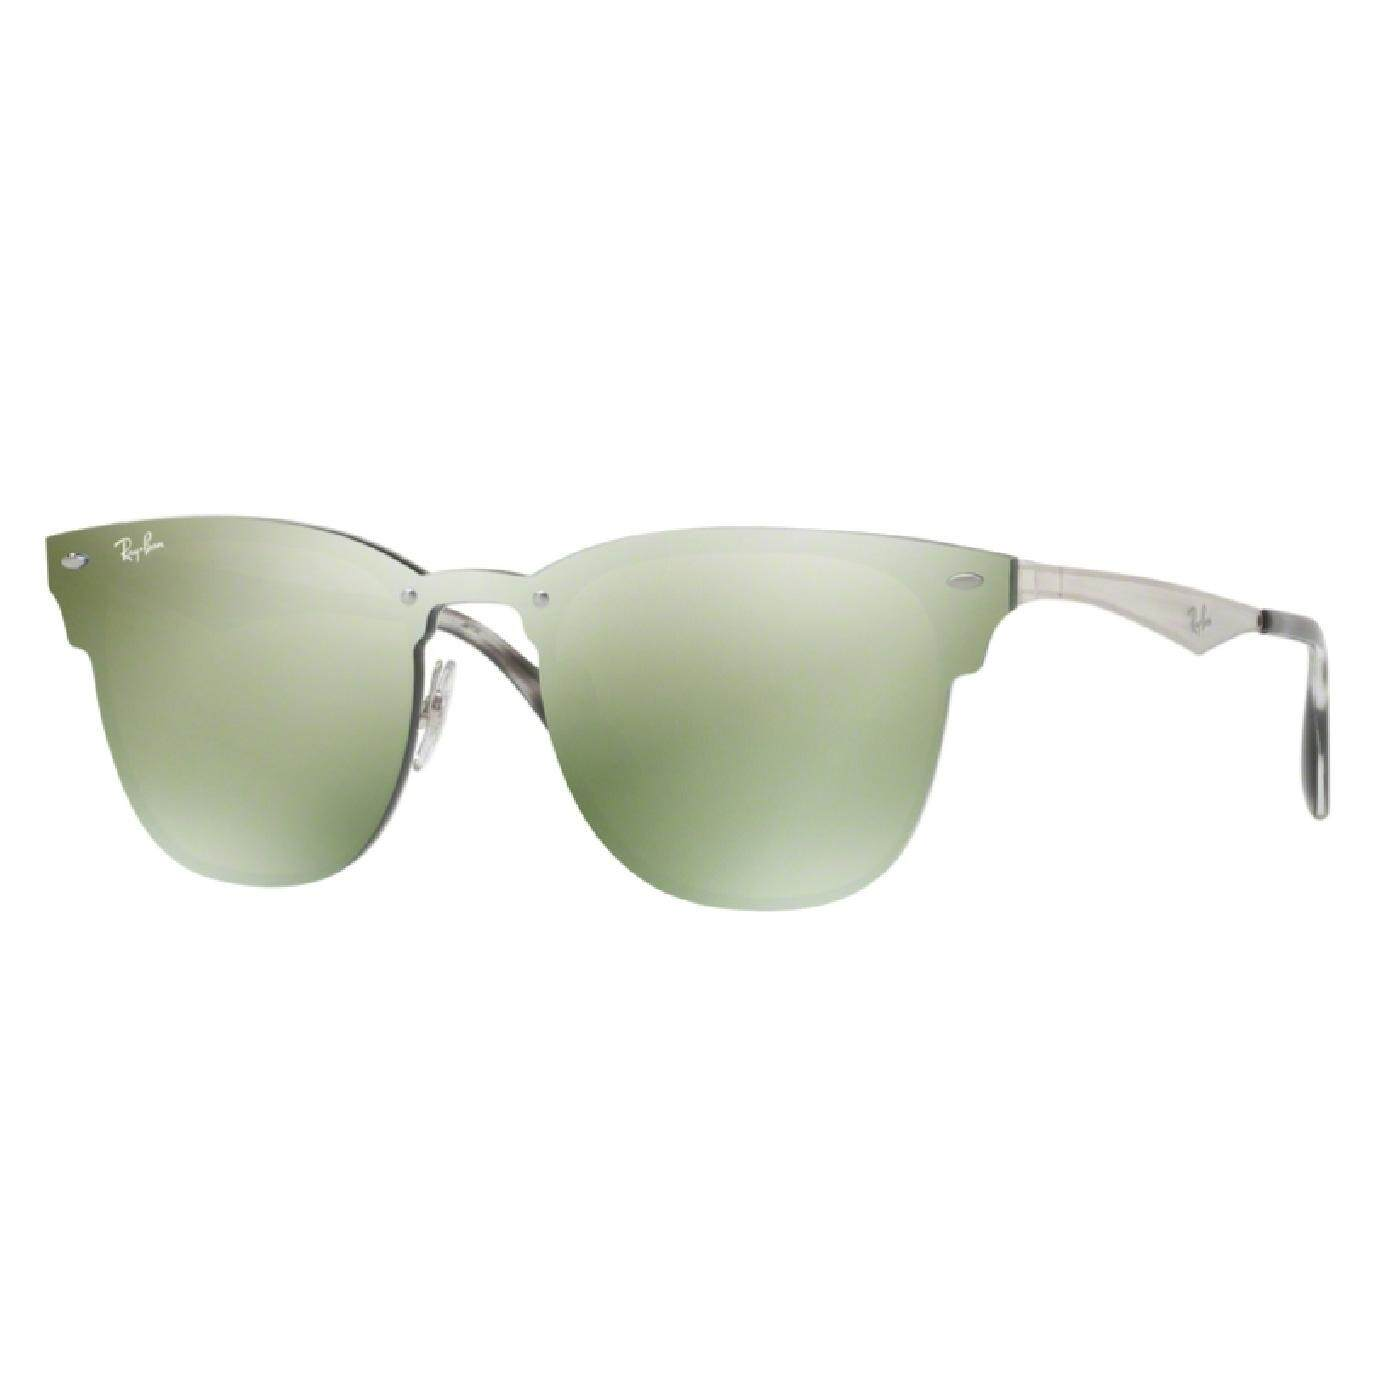 Ray-Ban Blaze Clubmaster Authentic Sunglasses , Brusched Silver d518f5708393